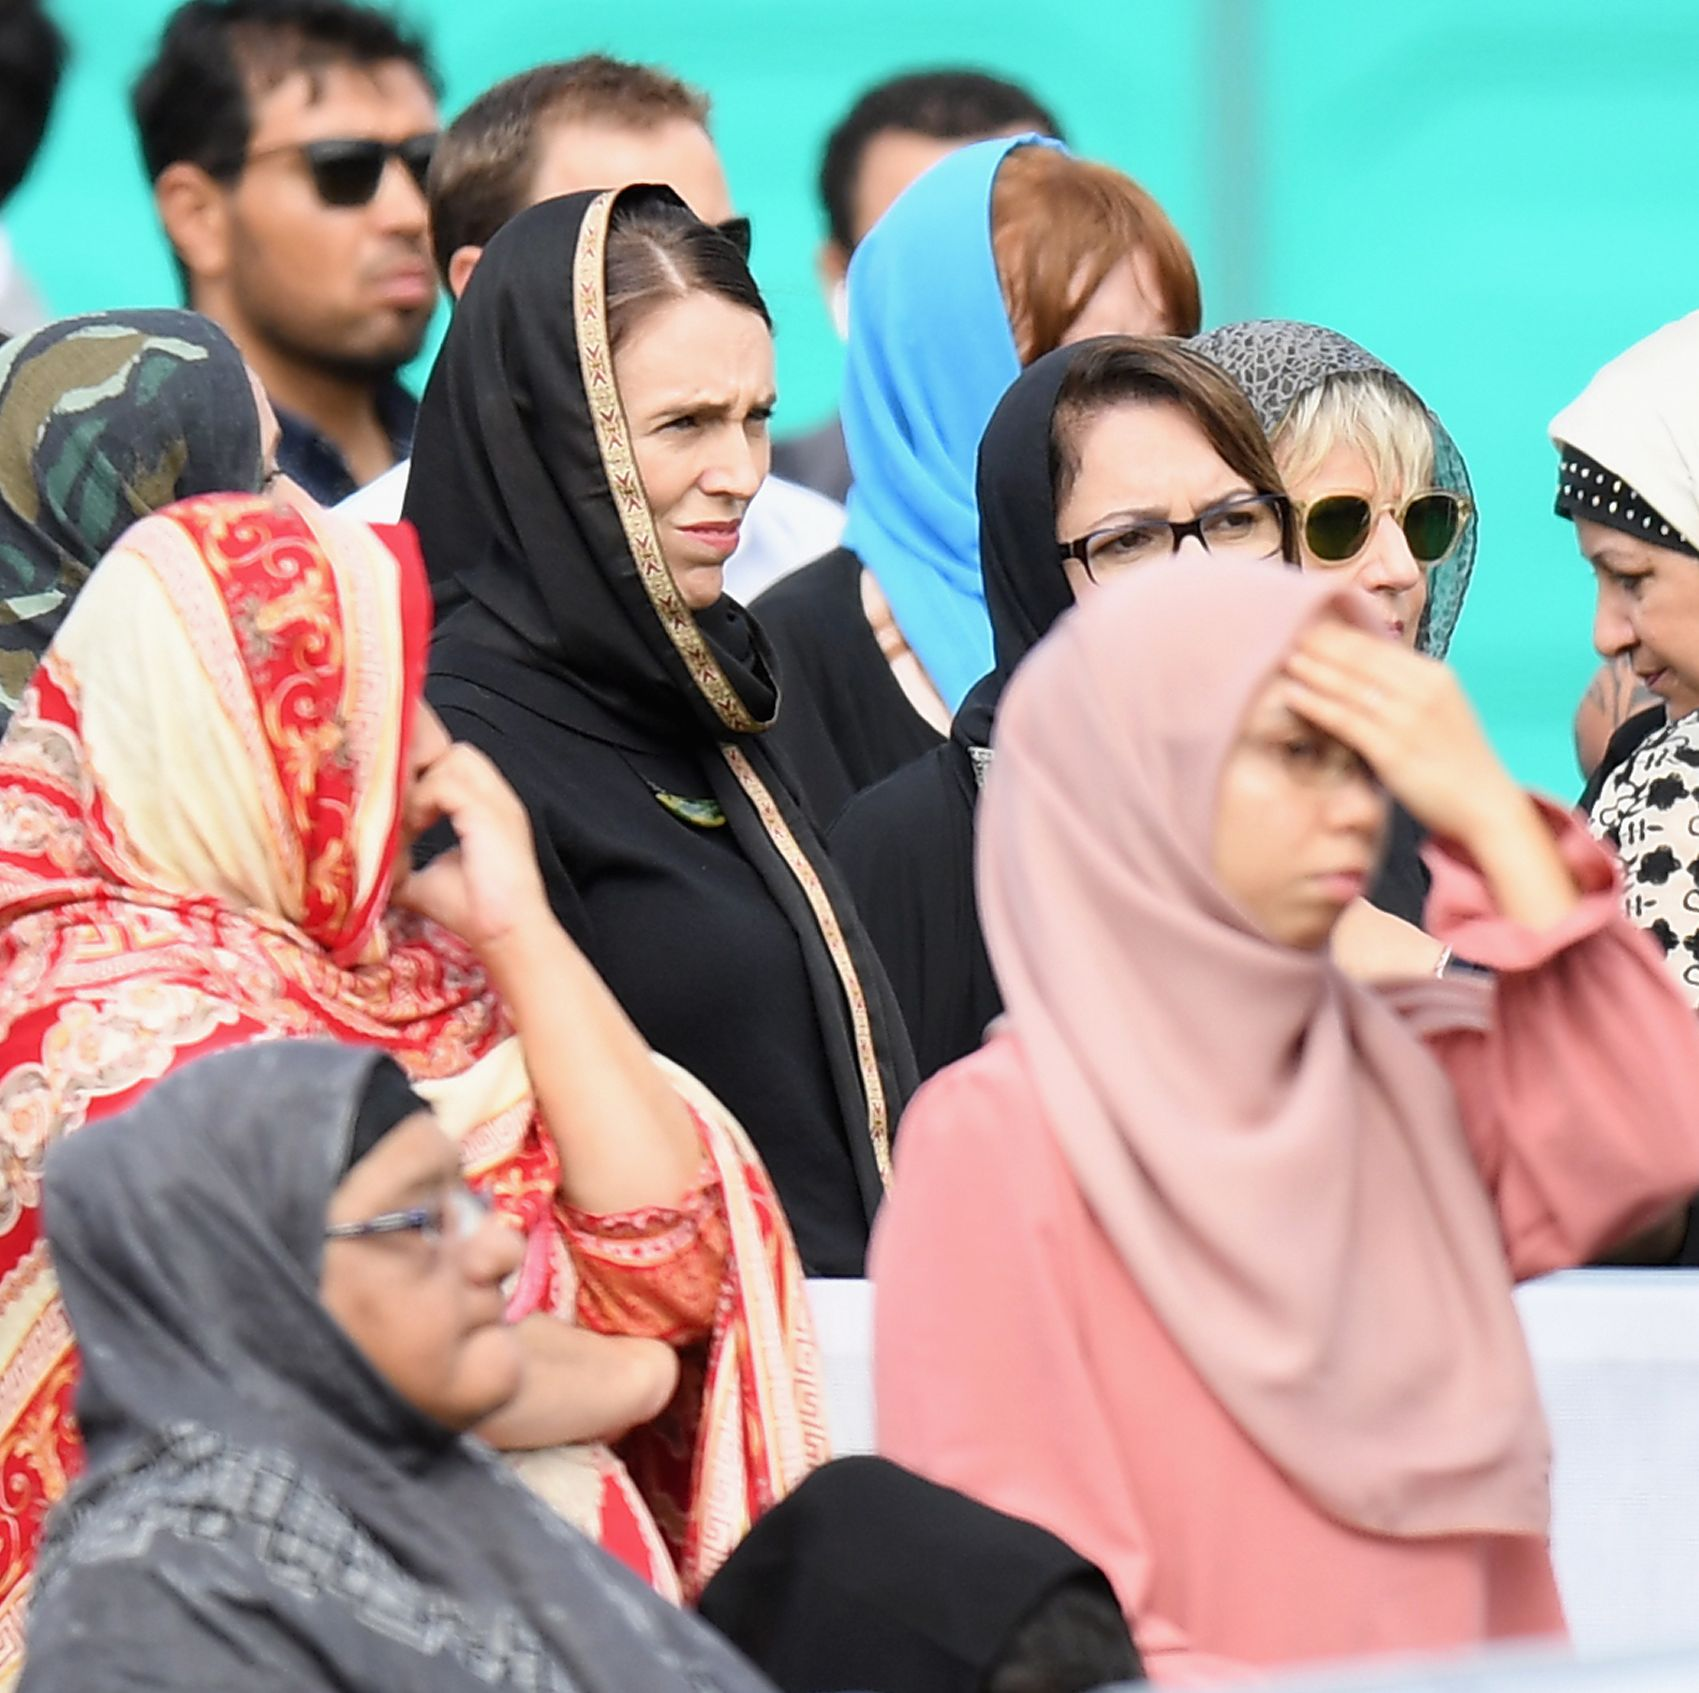 New Zealand Women Wear Headscarves to Honor Mosque Shooting Victims